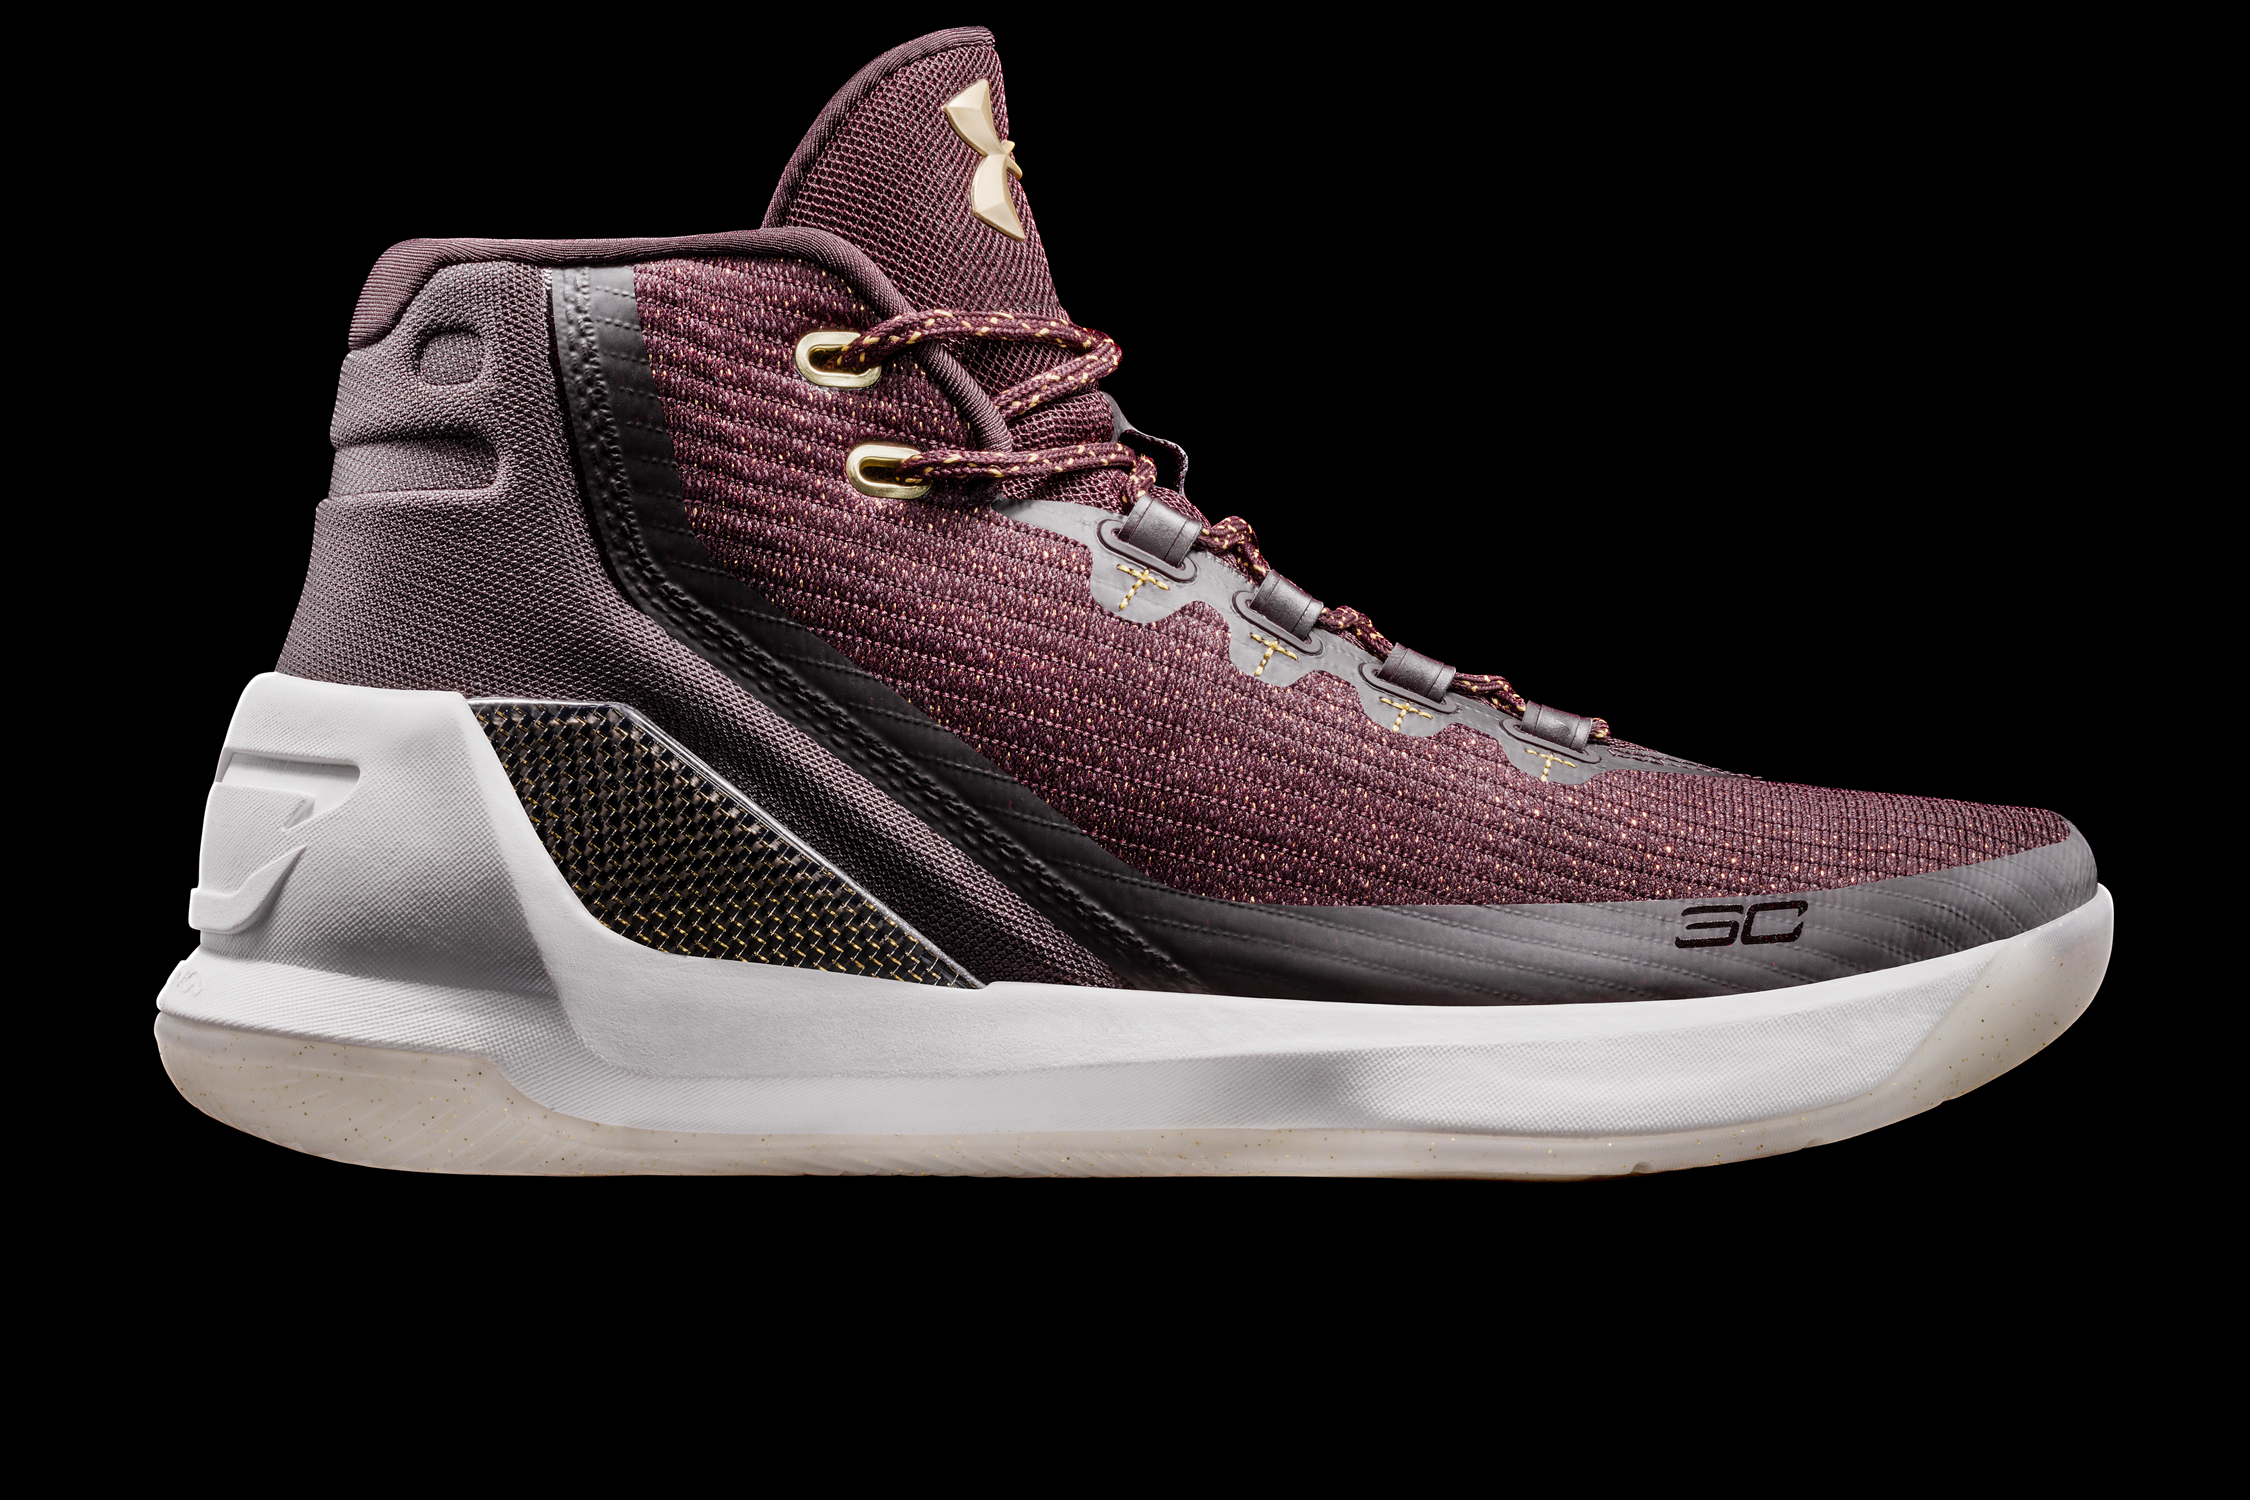 Under Armour Curry 3 'Magi' to be worn by Stephen Curry.